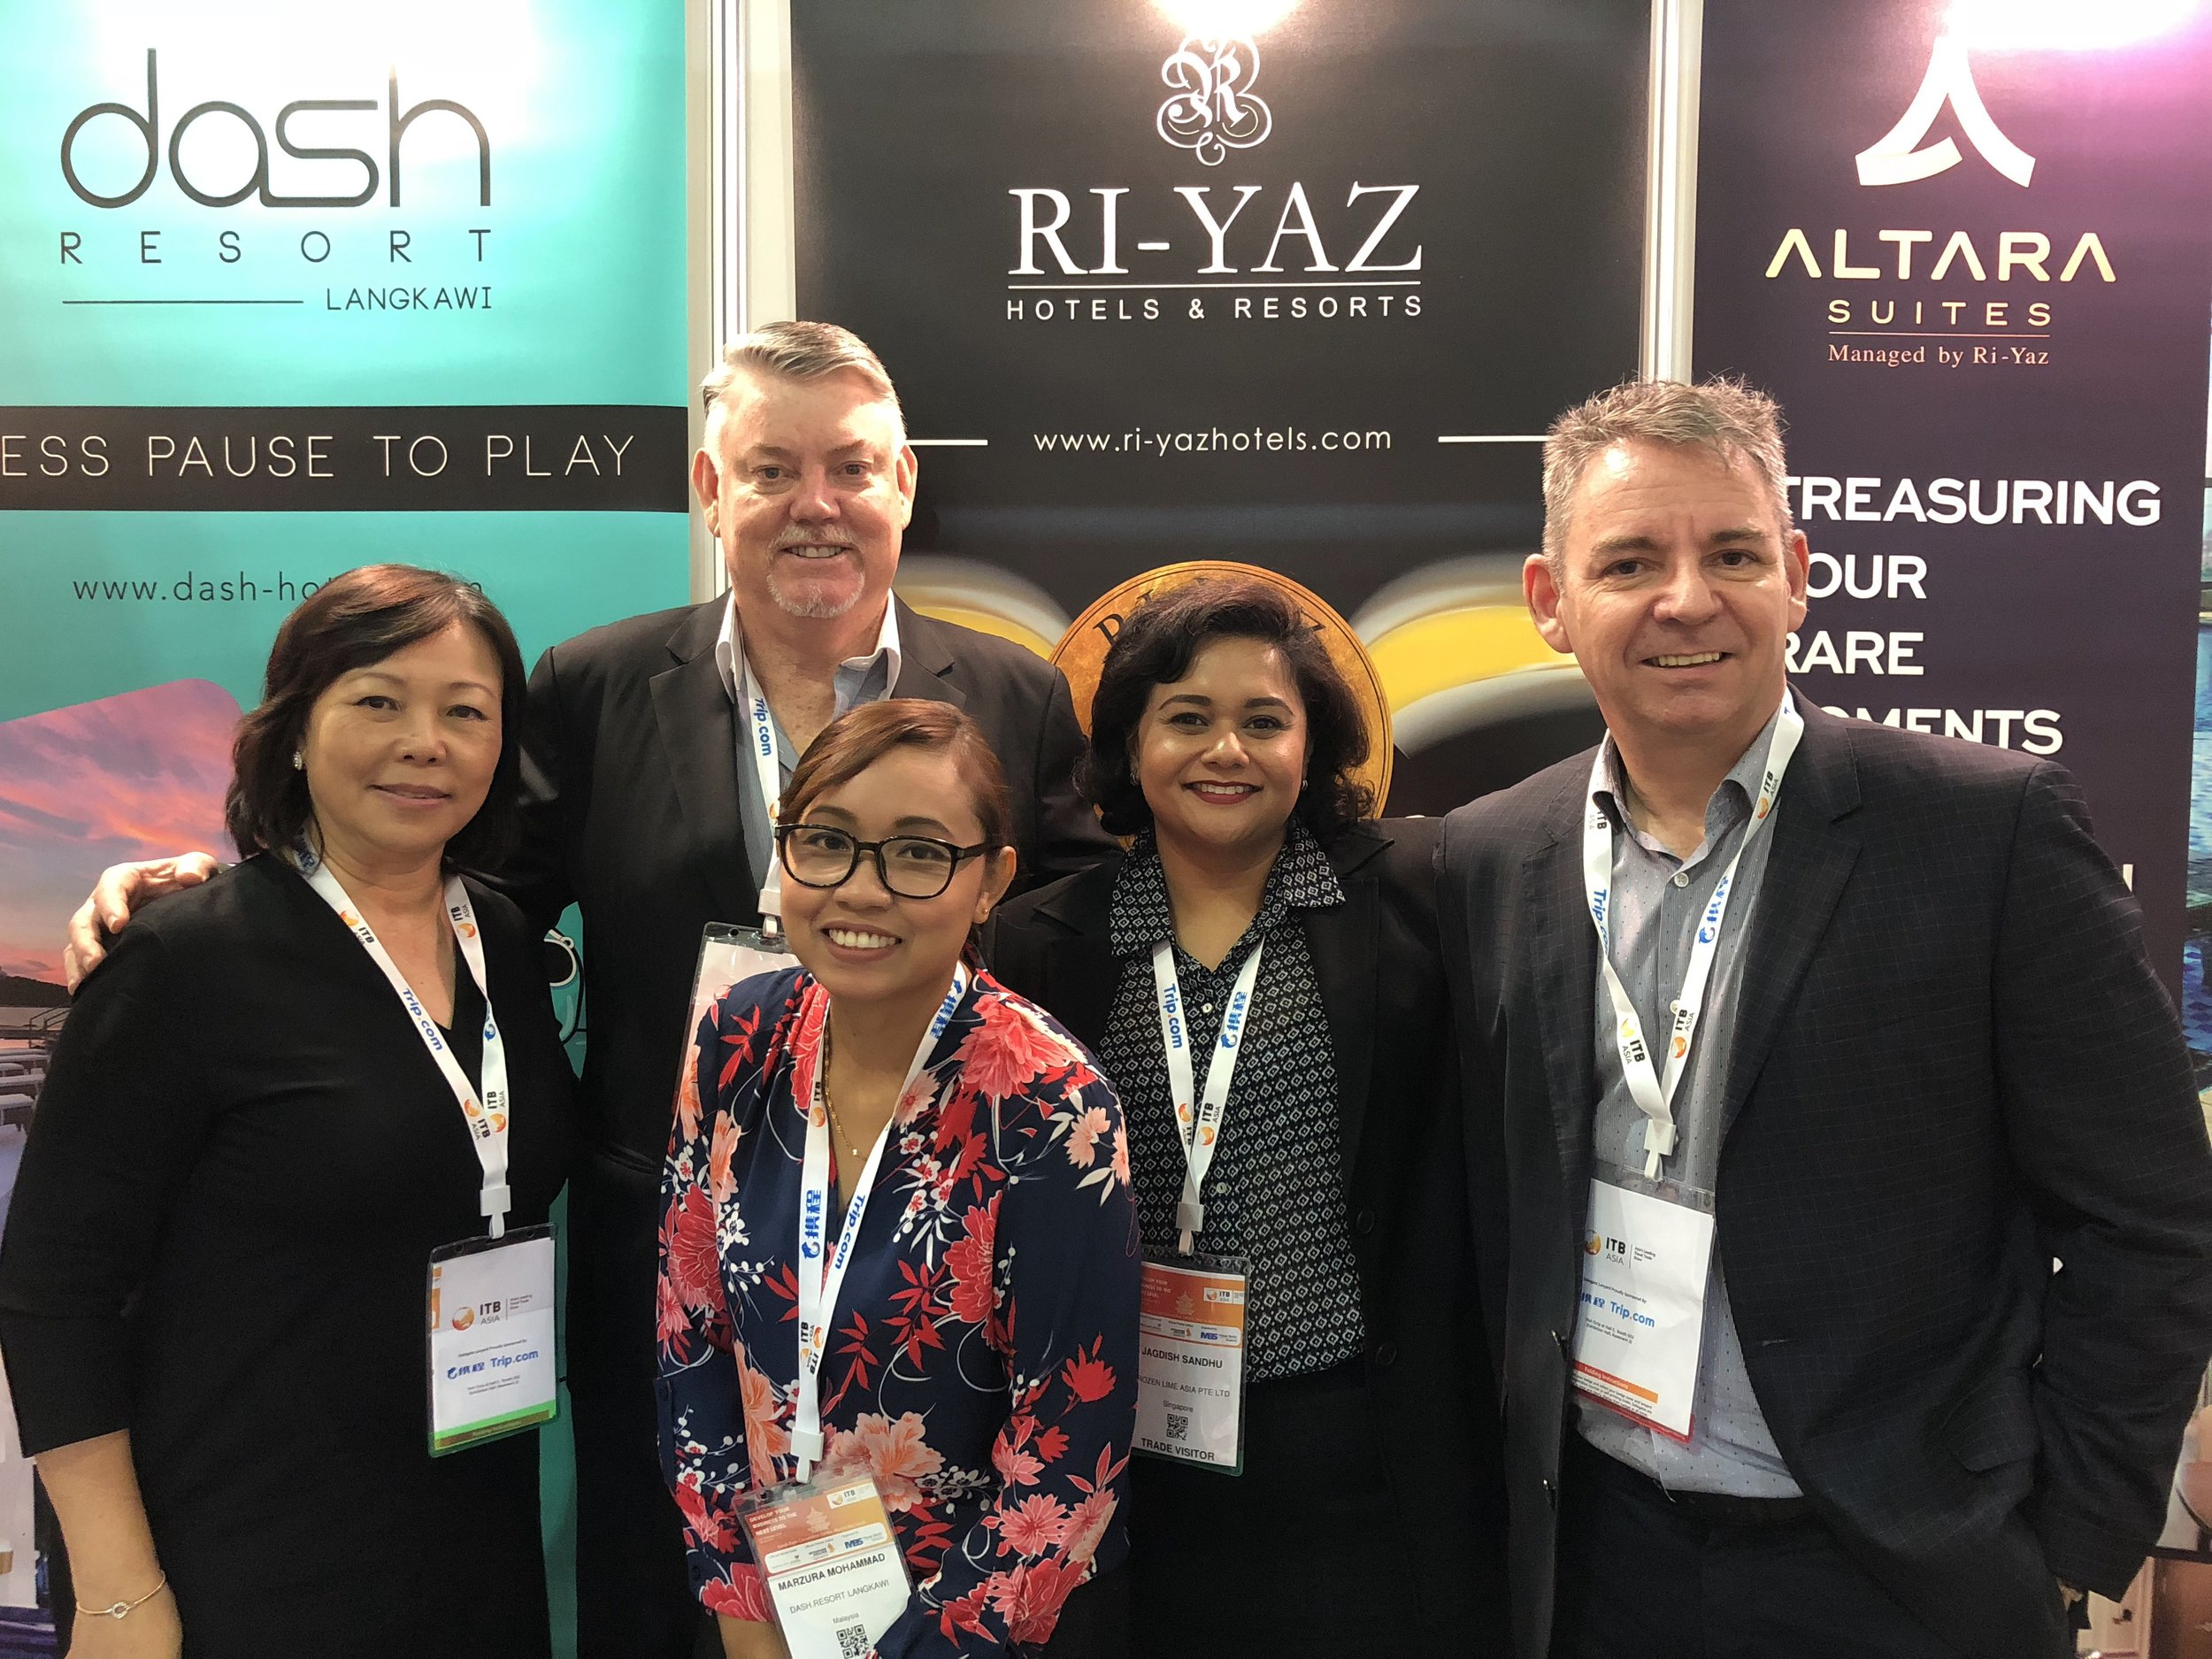 From left to right:  Ms Serene Law (FLA), Mr Gary Warnock (Altara Suites), Ms Marzura Mohammad (Dash Resort Langkawi), Ms Jagdish Sandhu (FLA), Mr Andreas Rud (Ri-Yaz Hotels & Resorts).